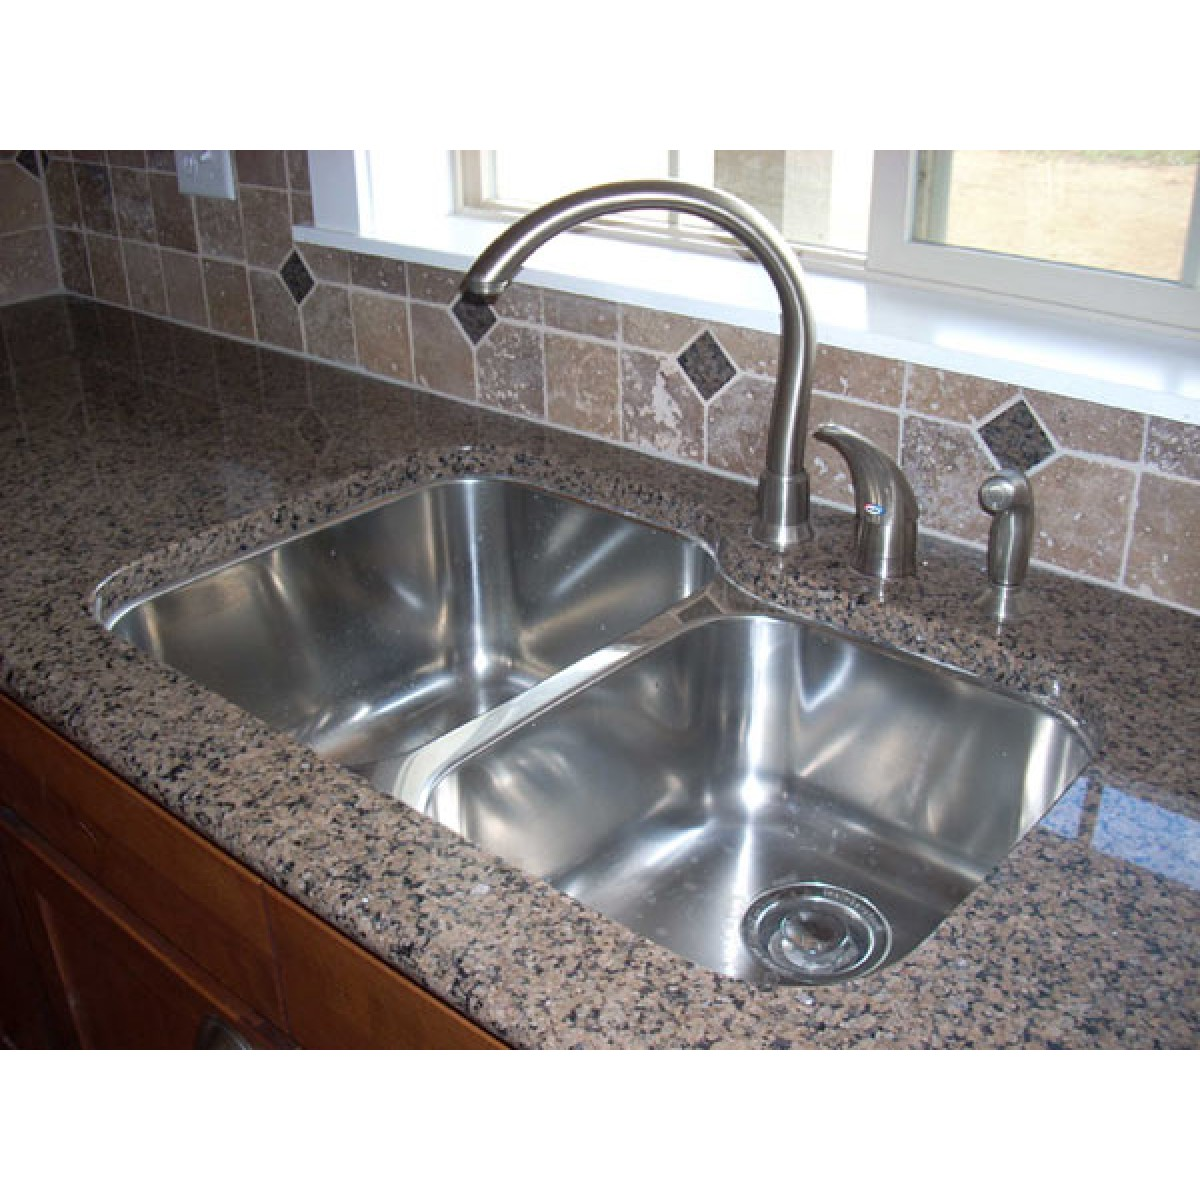 Stainless Steel Double Sink 31 Inch Stainless Steel Undermount 60 40 Double Bowl